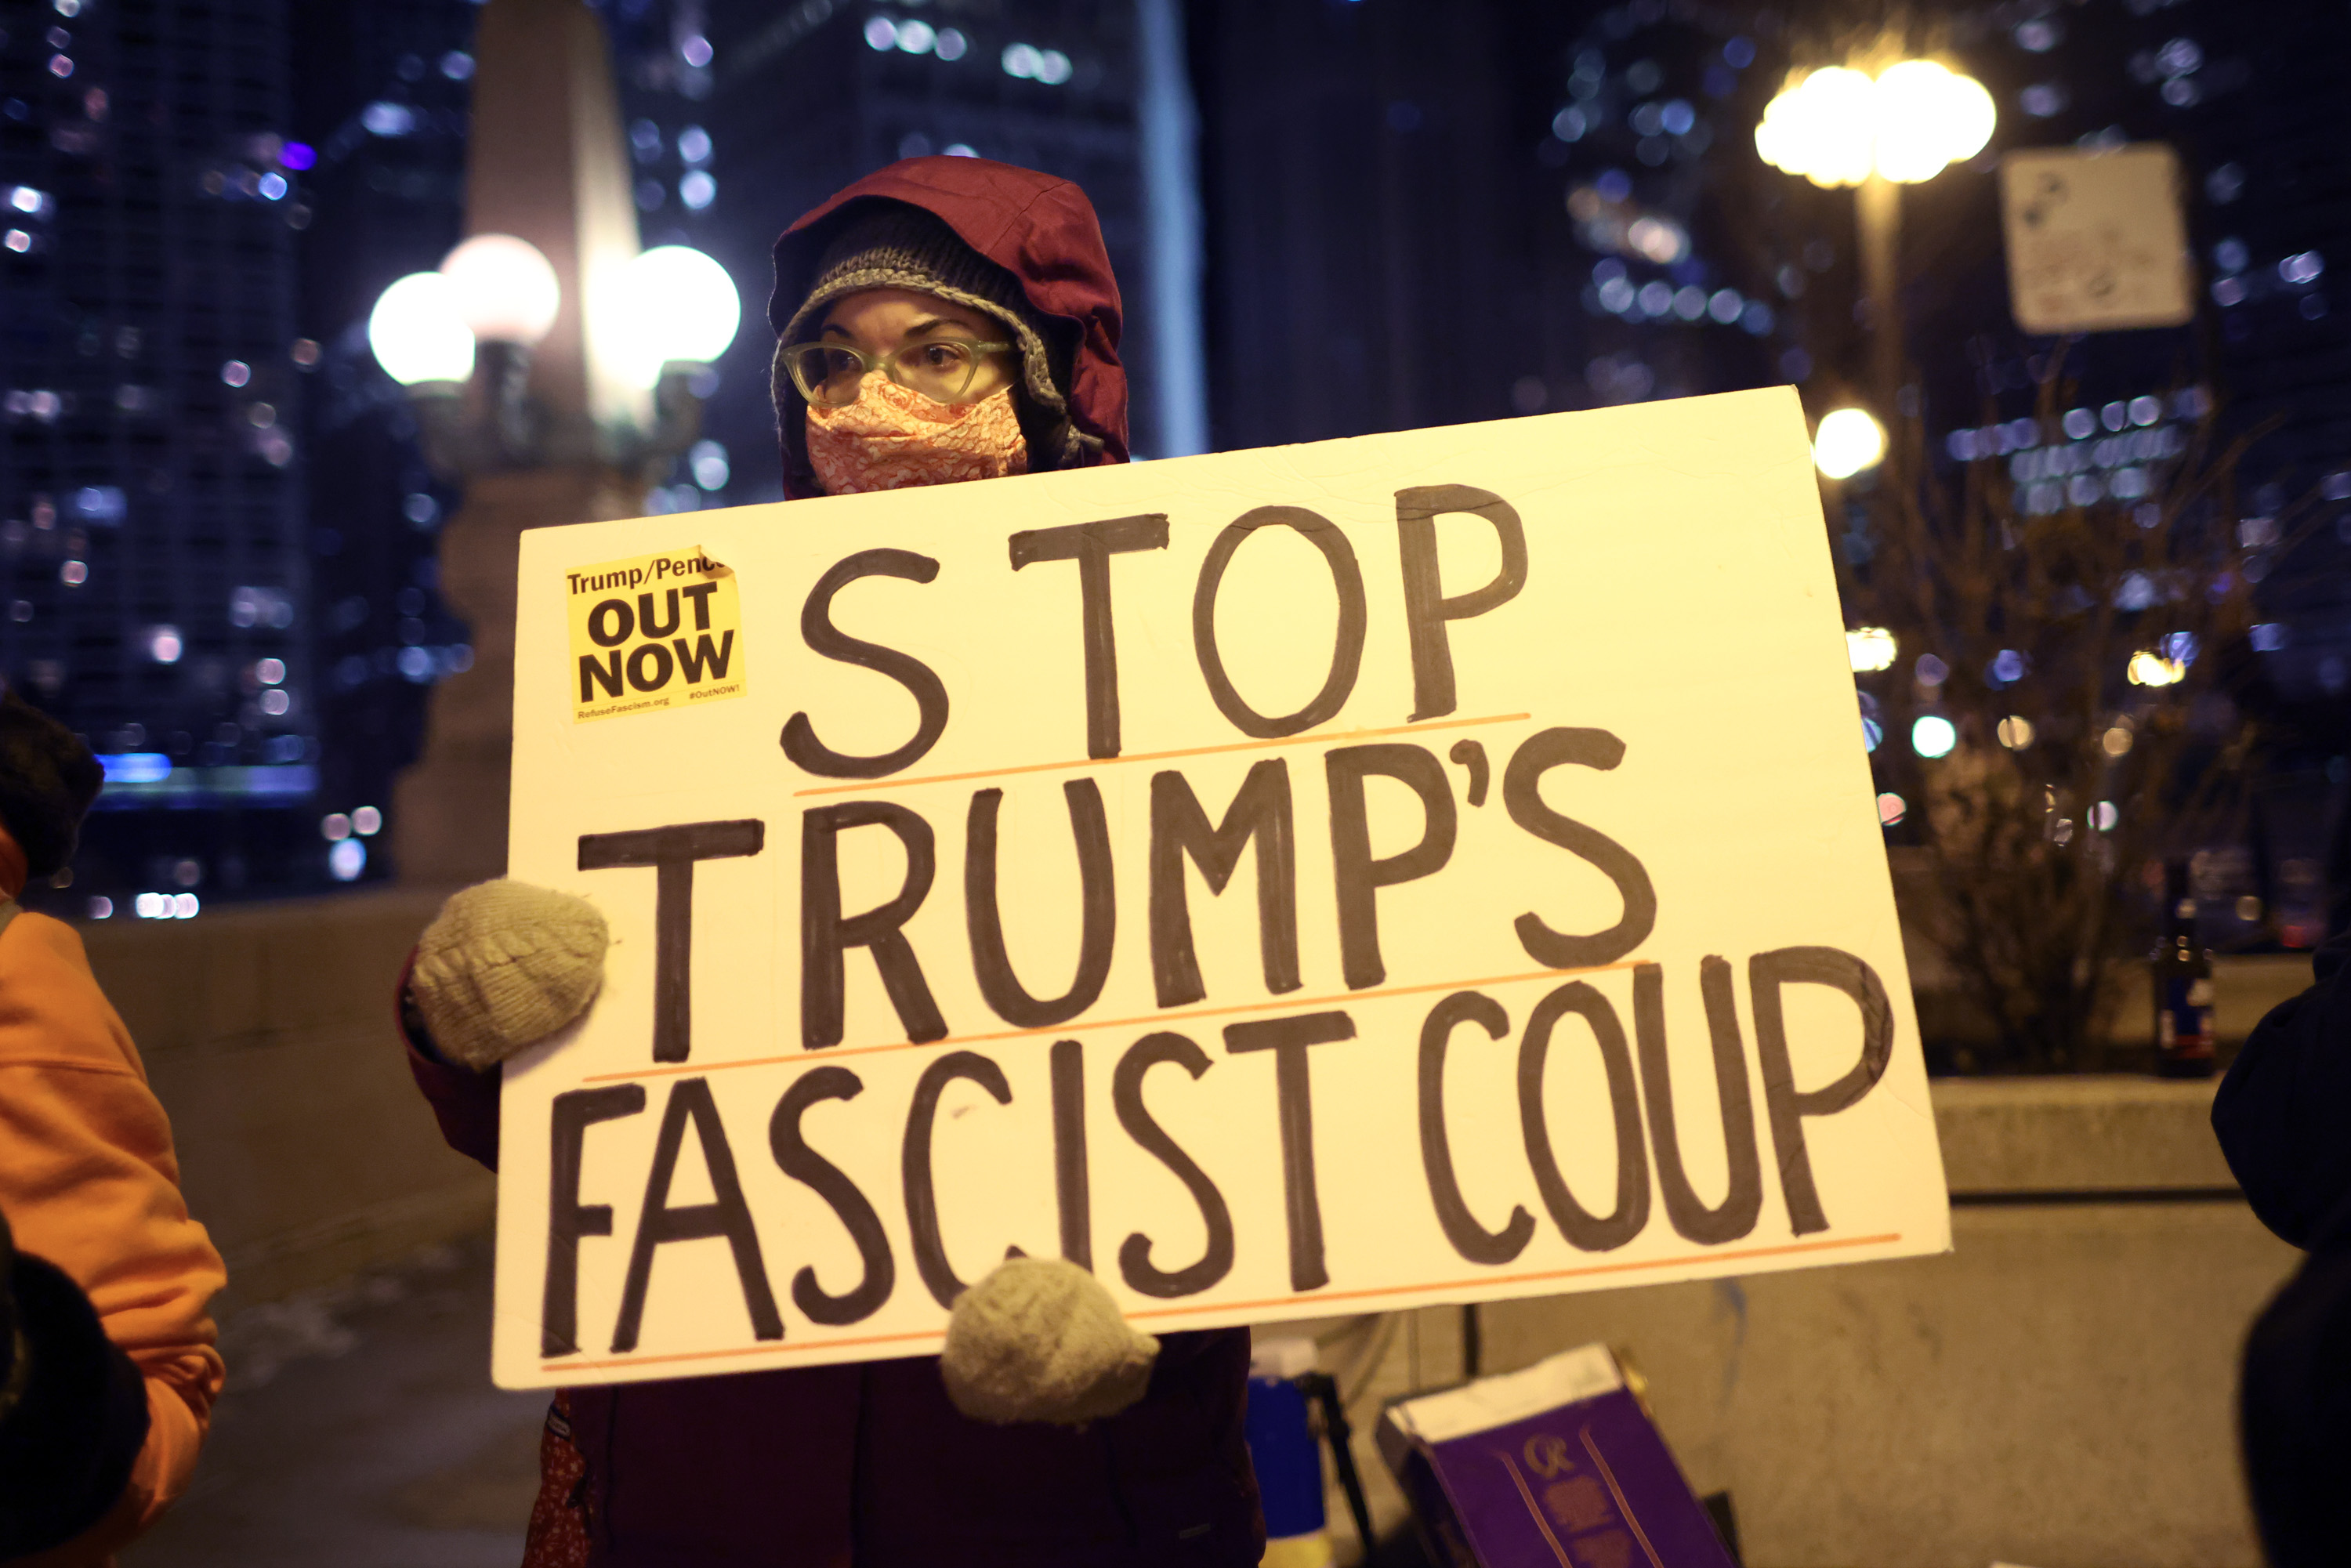 CHICAGO, ILLINOIS - JANUARY 07: A small group of demonstrators protest near Trump Tower on January 07, 2021 in Chicago, Illinois. They called for the removal of President Donald Trump from office after a pro-Trump mob stormed the Capitol building in Washington, DC yesterday as lawmakers met to count the Electoral College votes in the presidential election.  (Photo by Scott Olson/Getty Images)